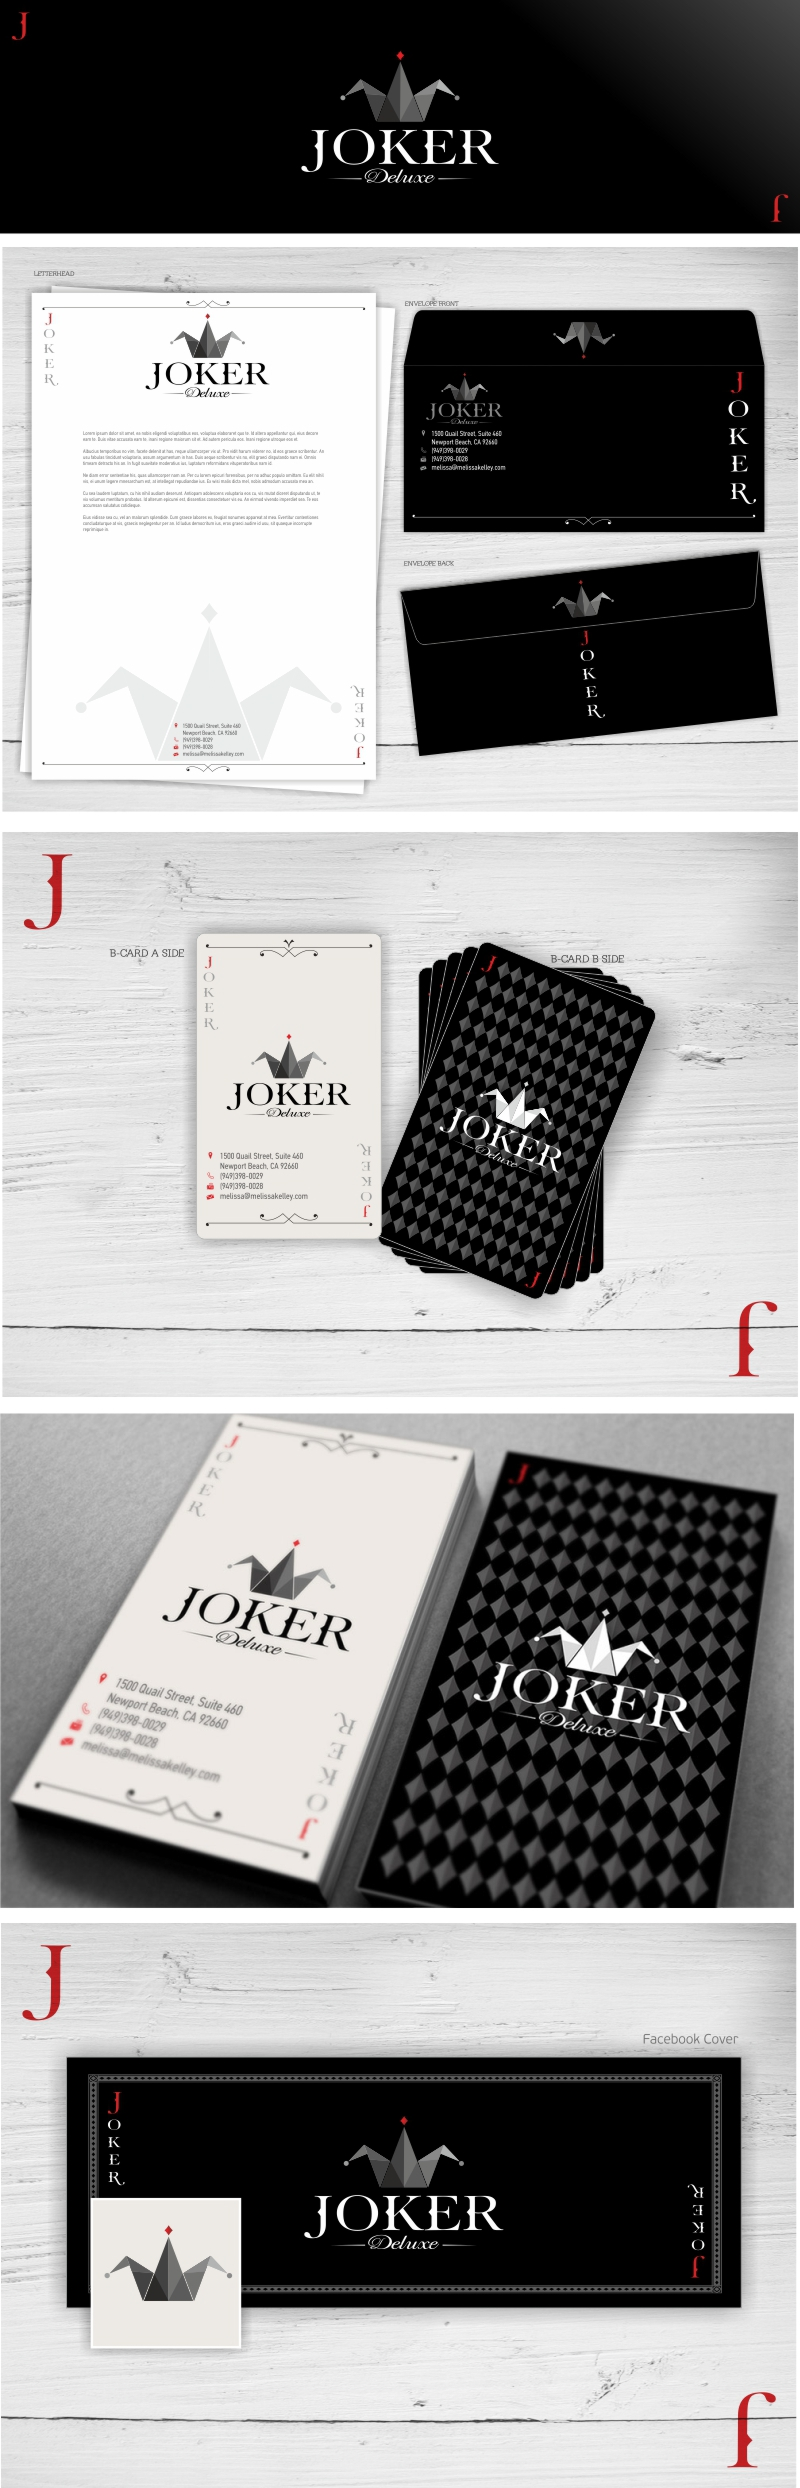 JOKER DELUXE Branding (AVAILABLE) on Behance